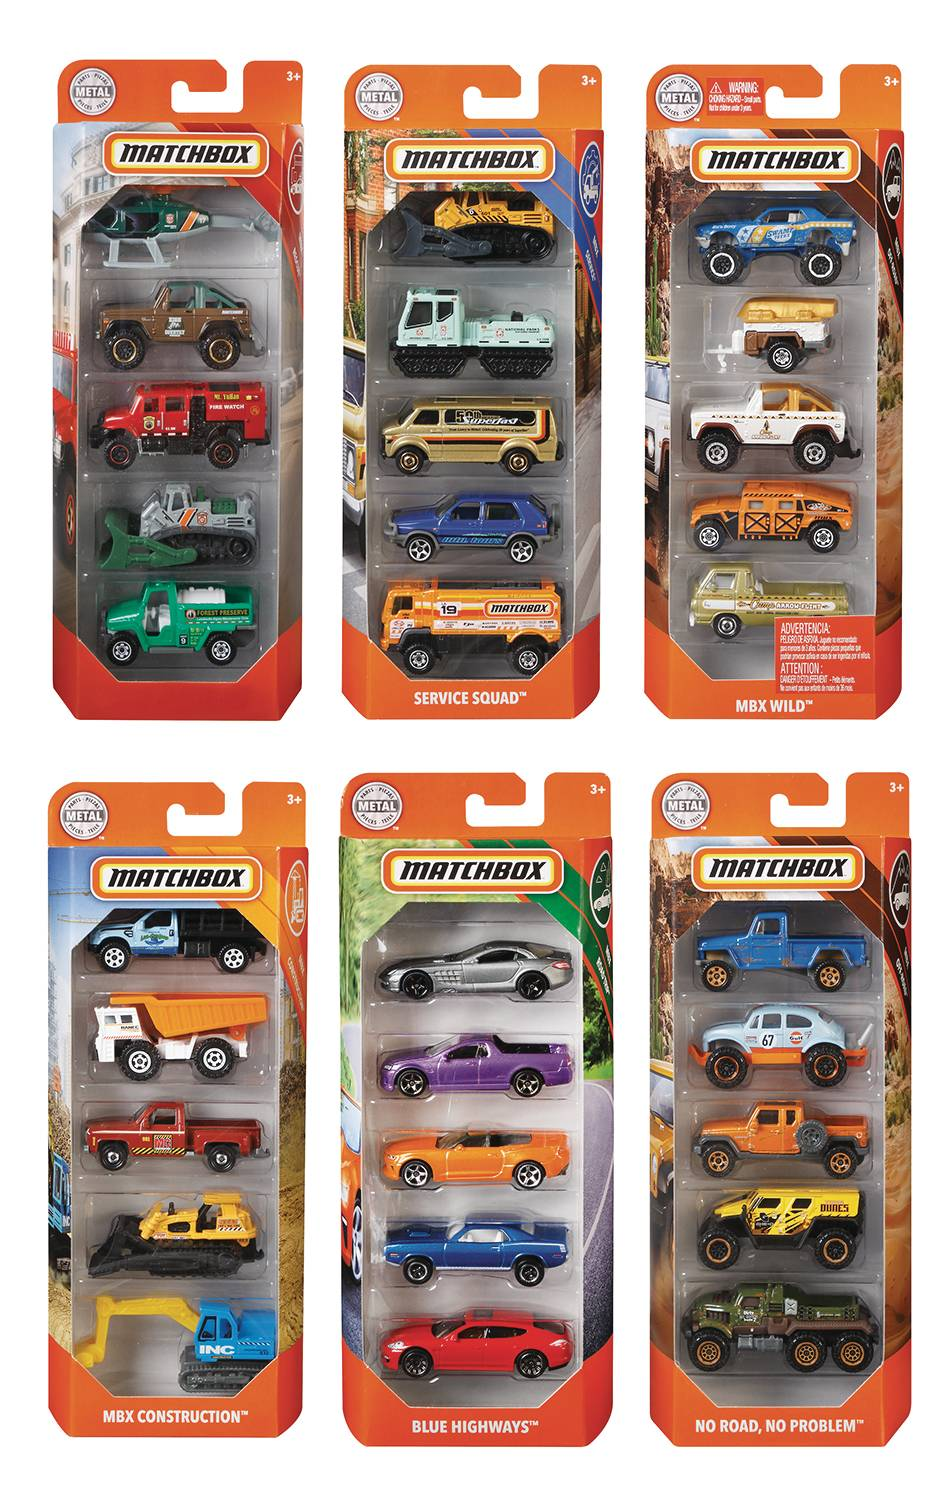 MATCHBOX 1/64 DIE-CAST VEHICLE 5PK ASST